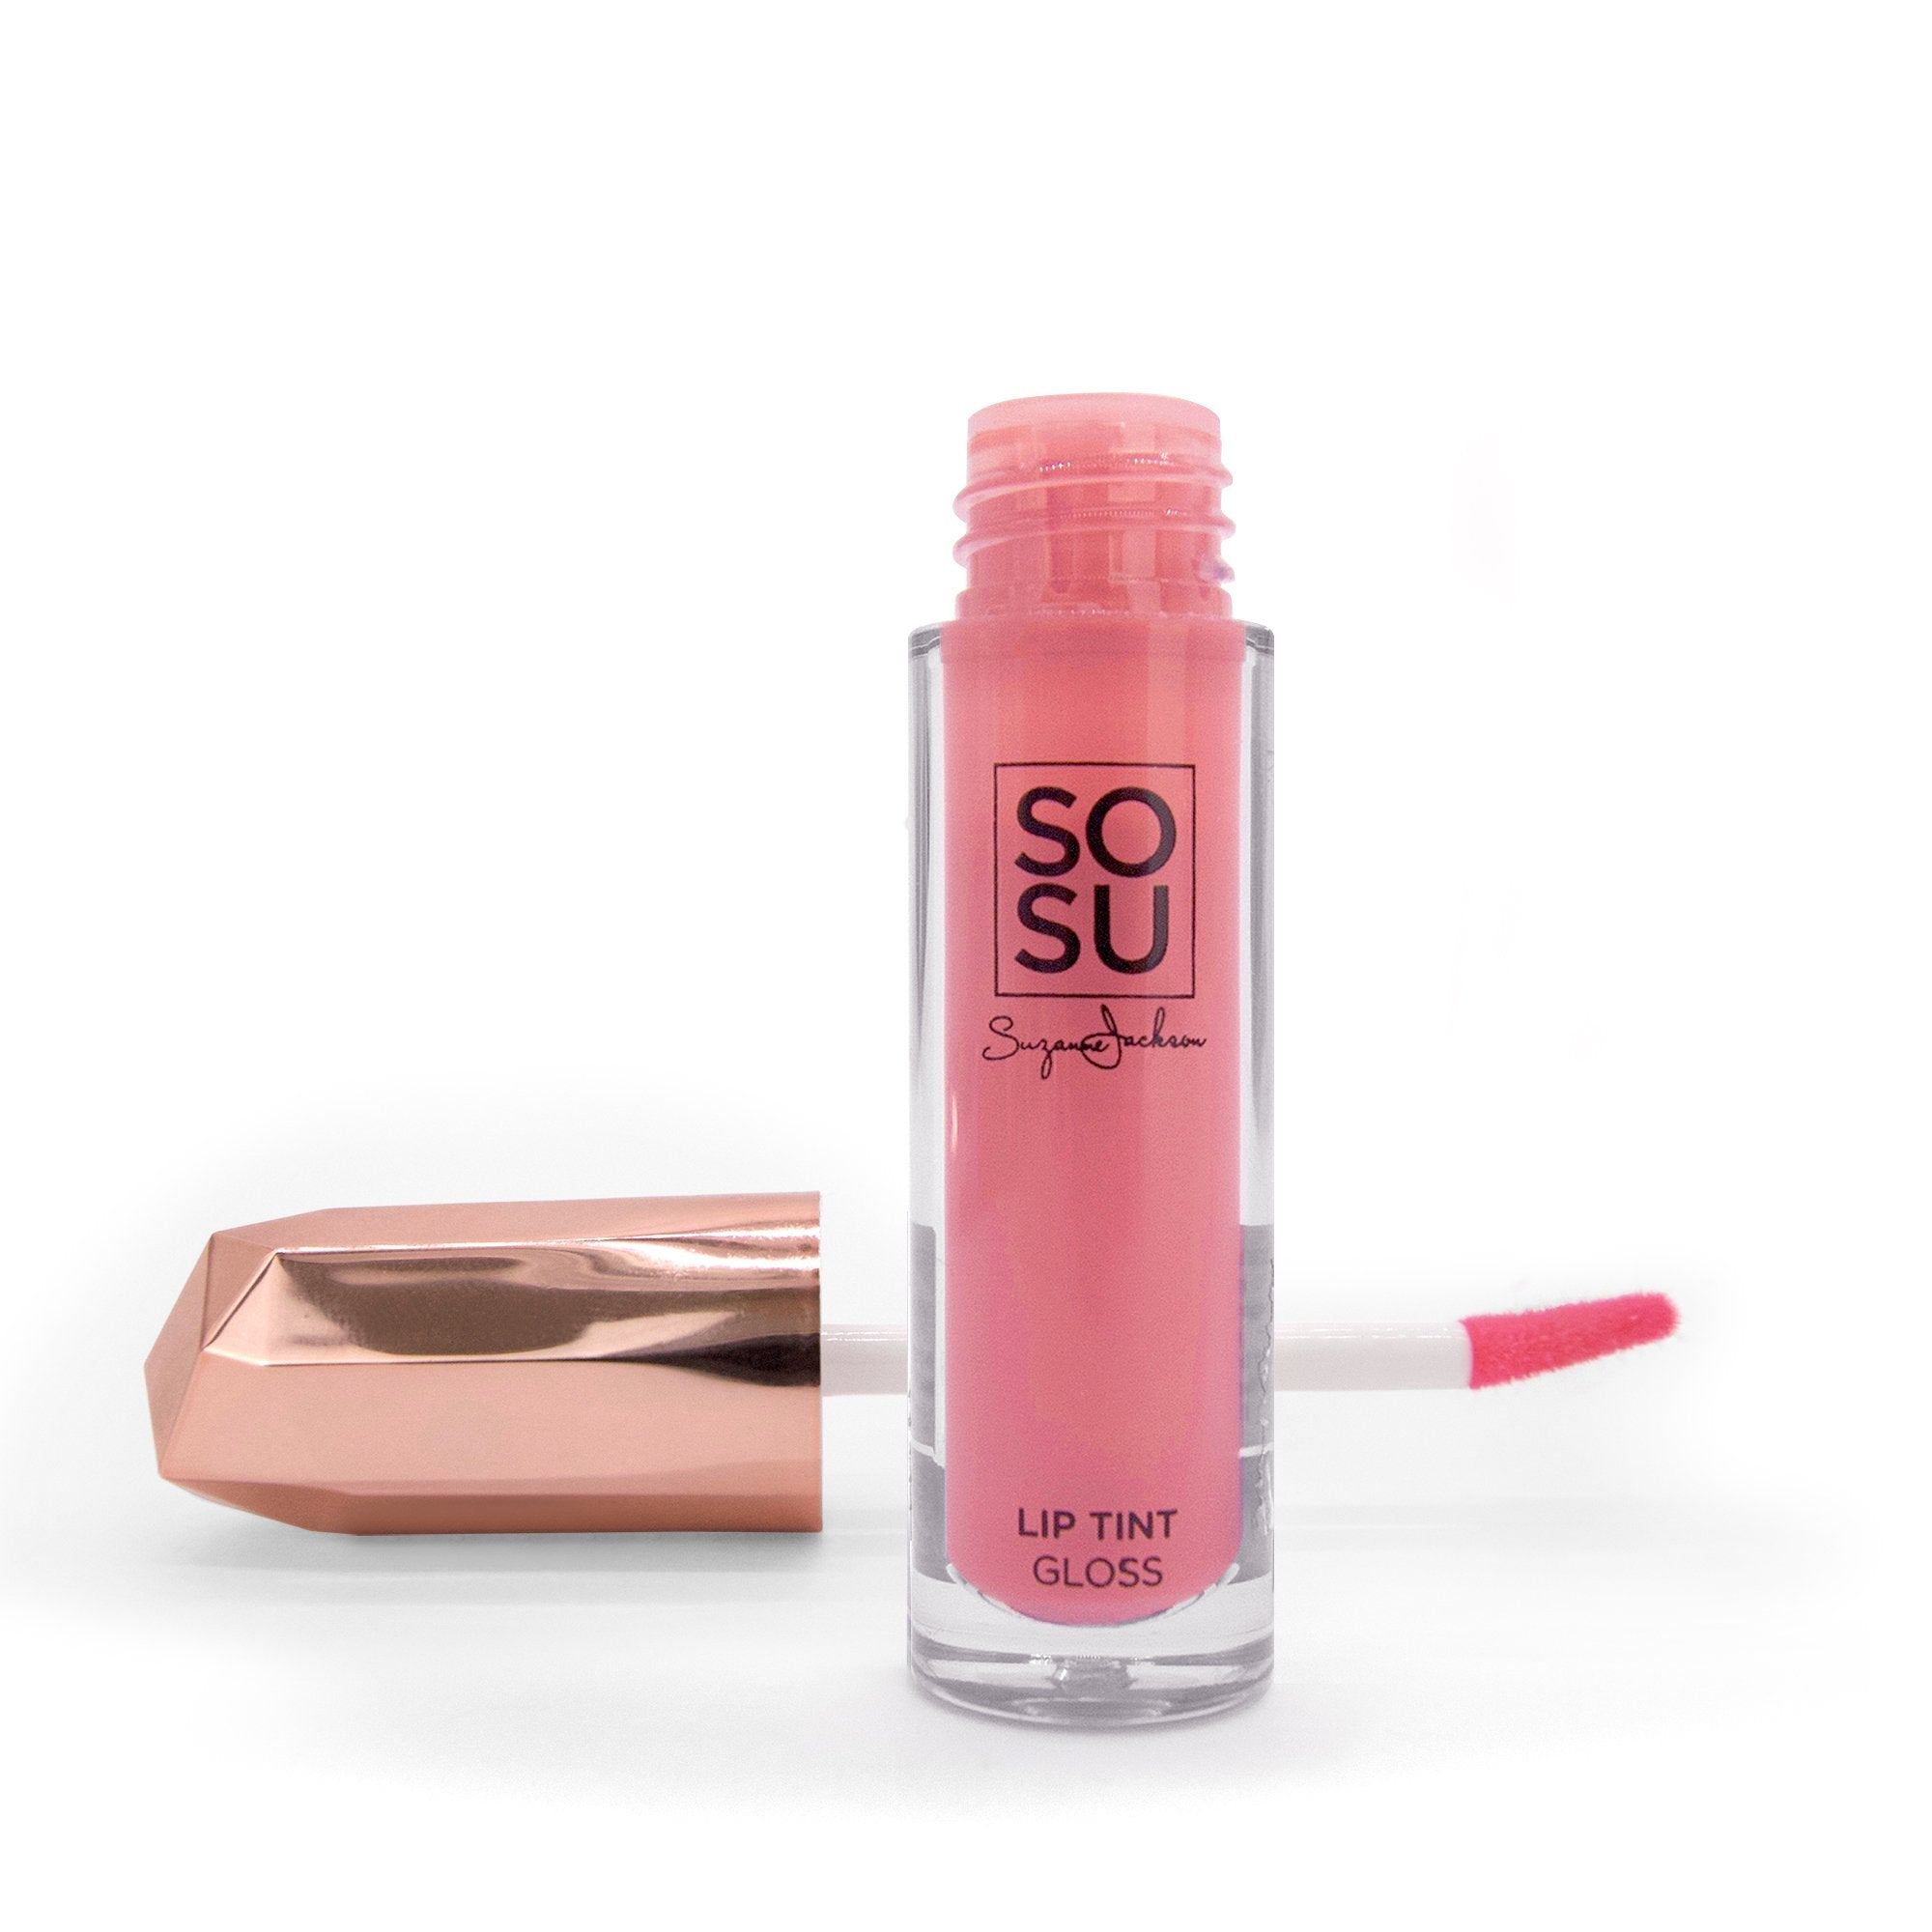 Sosu Whatever / Lip Tint Gloss